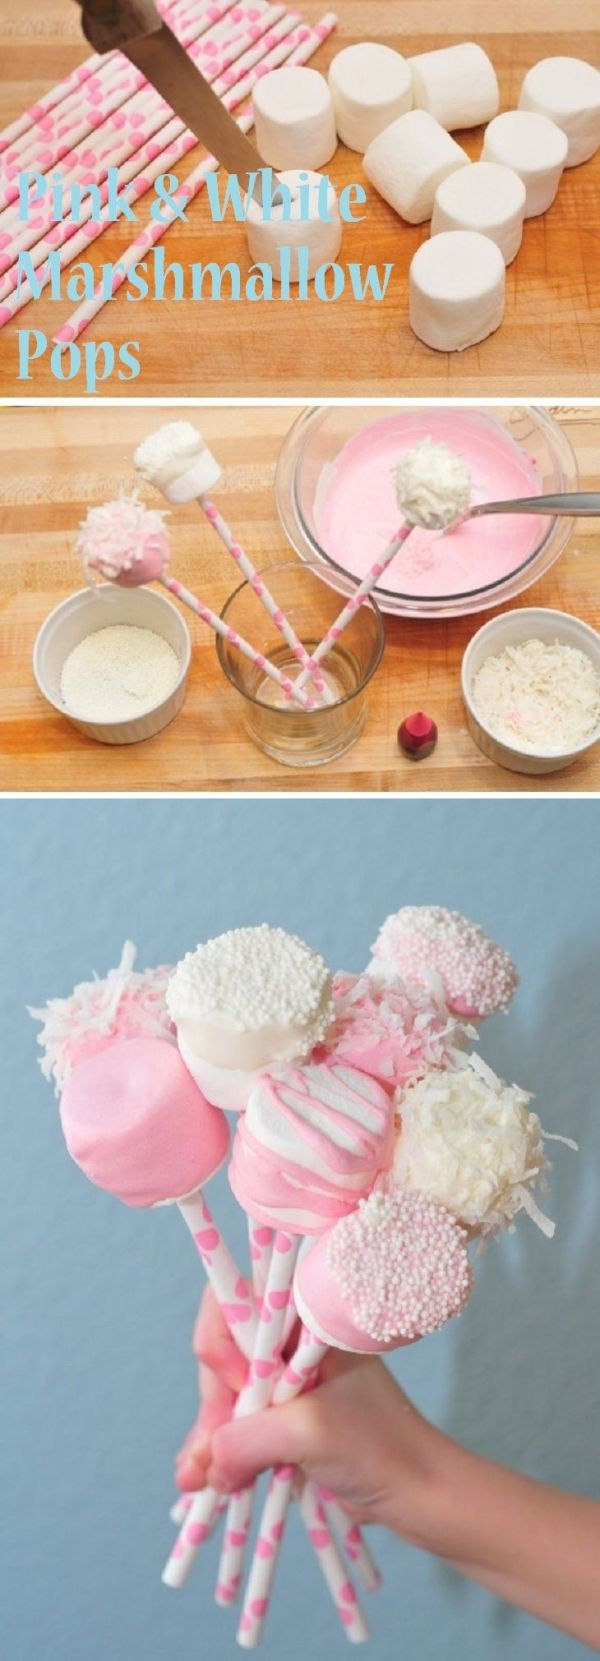 marshmallow pops cute ideas for baby shower cupcakepedia by ines